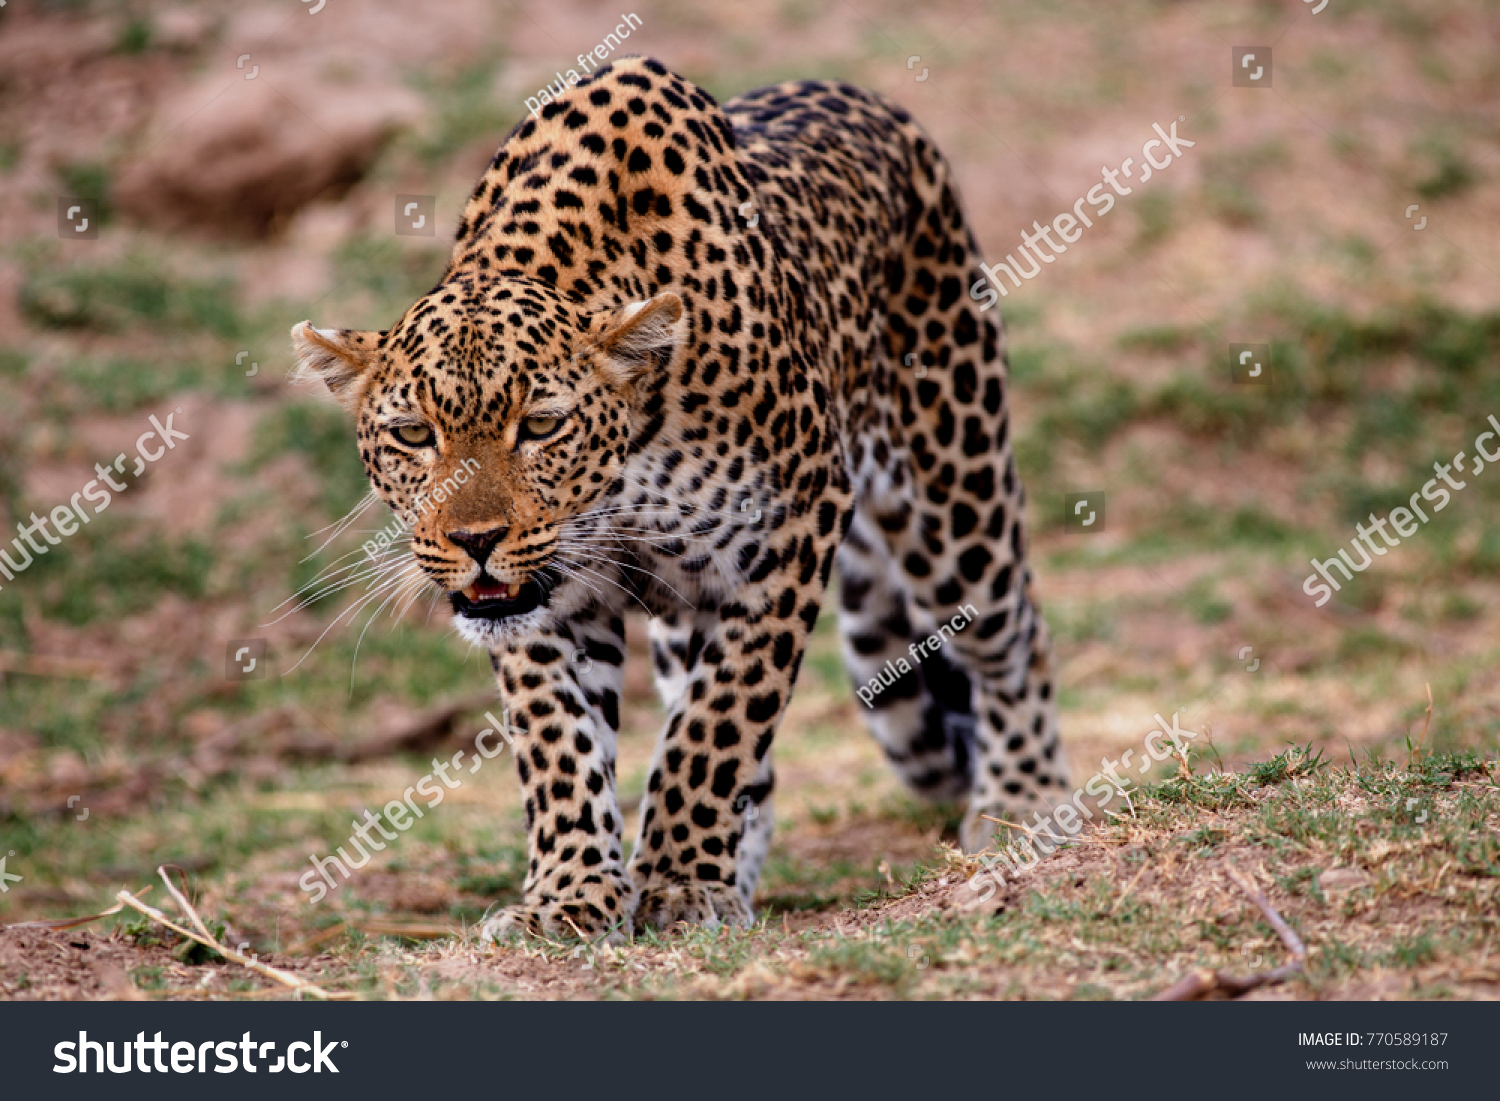 stock-photo-female-leopard-panthera-pard